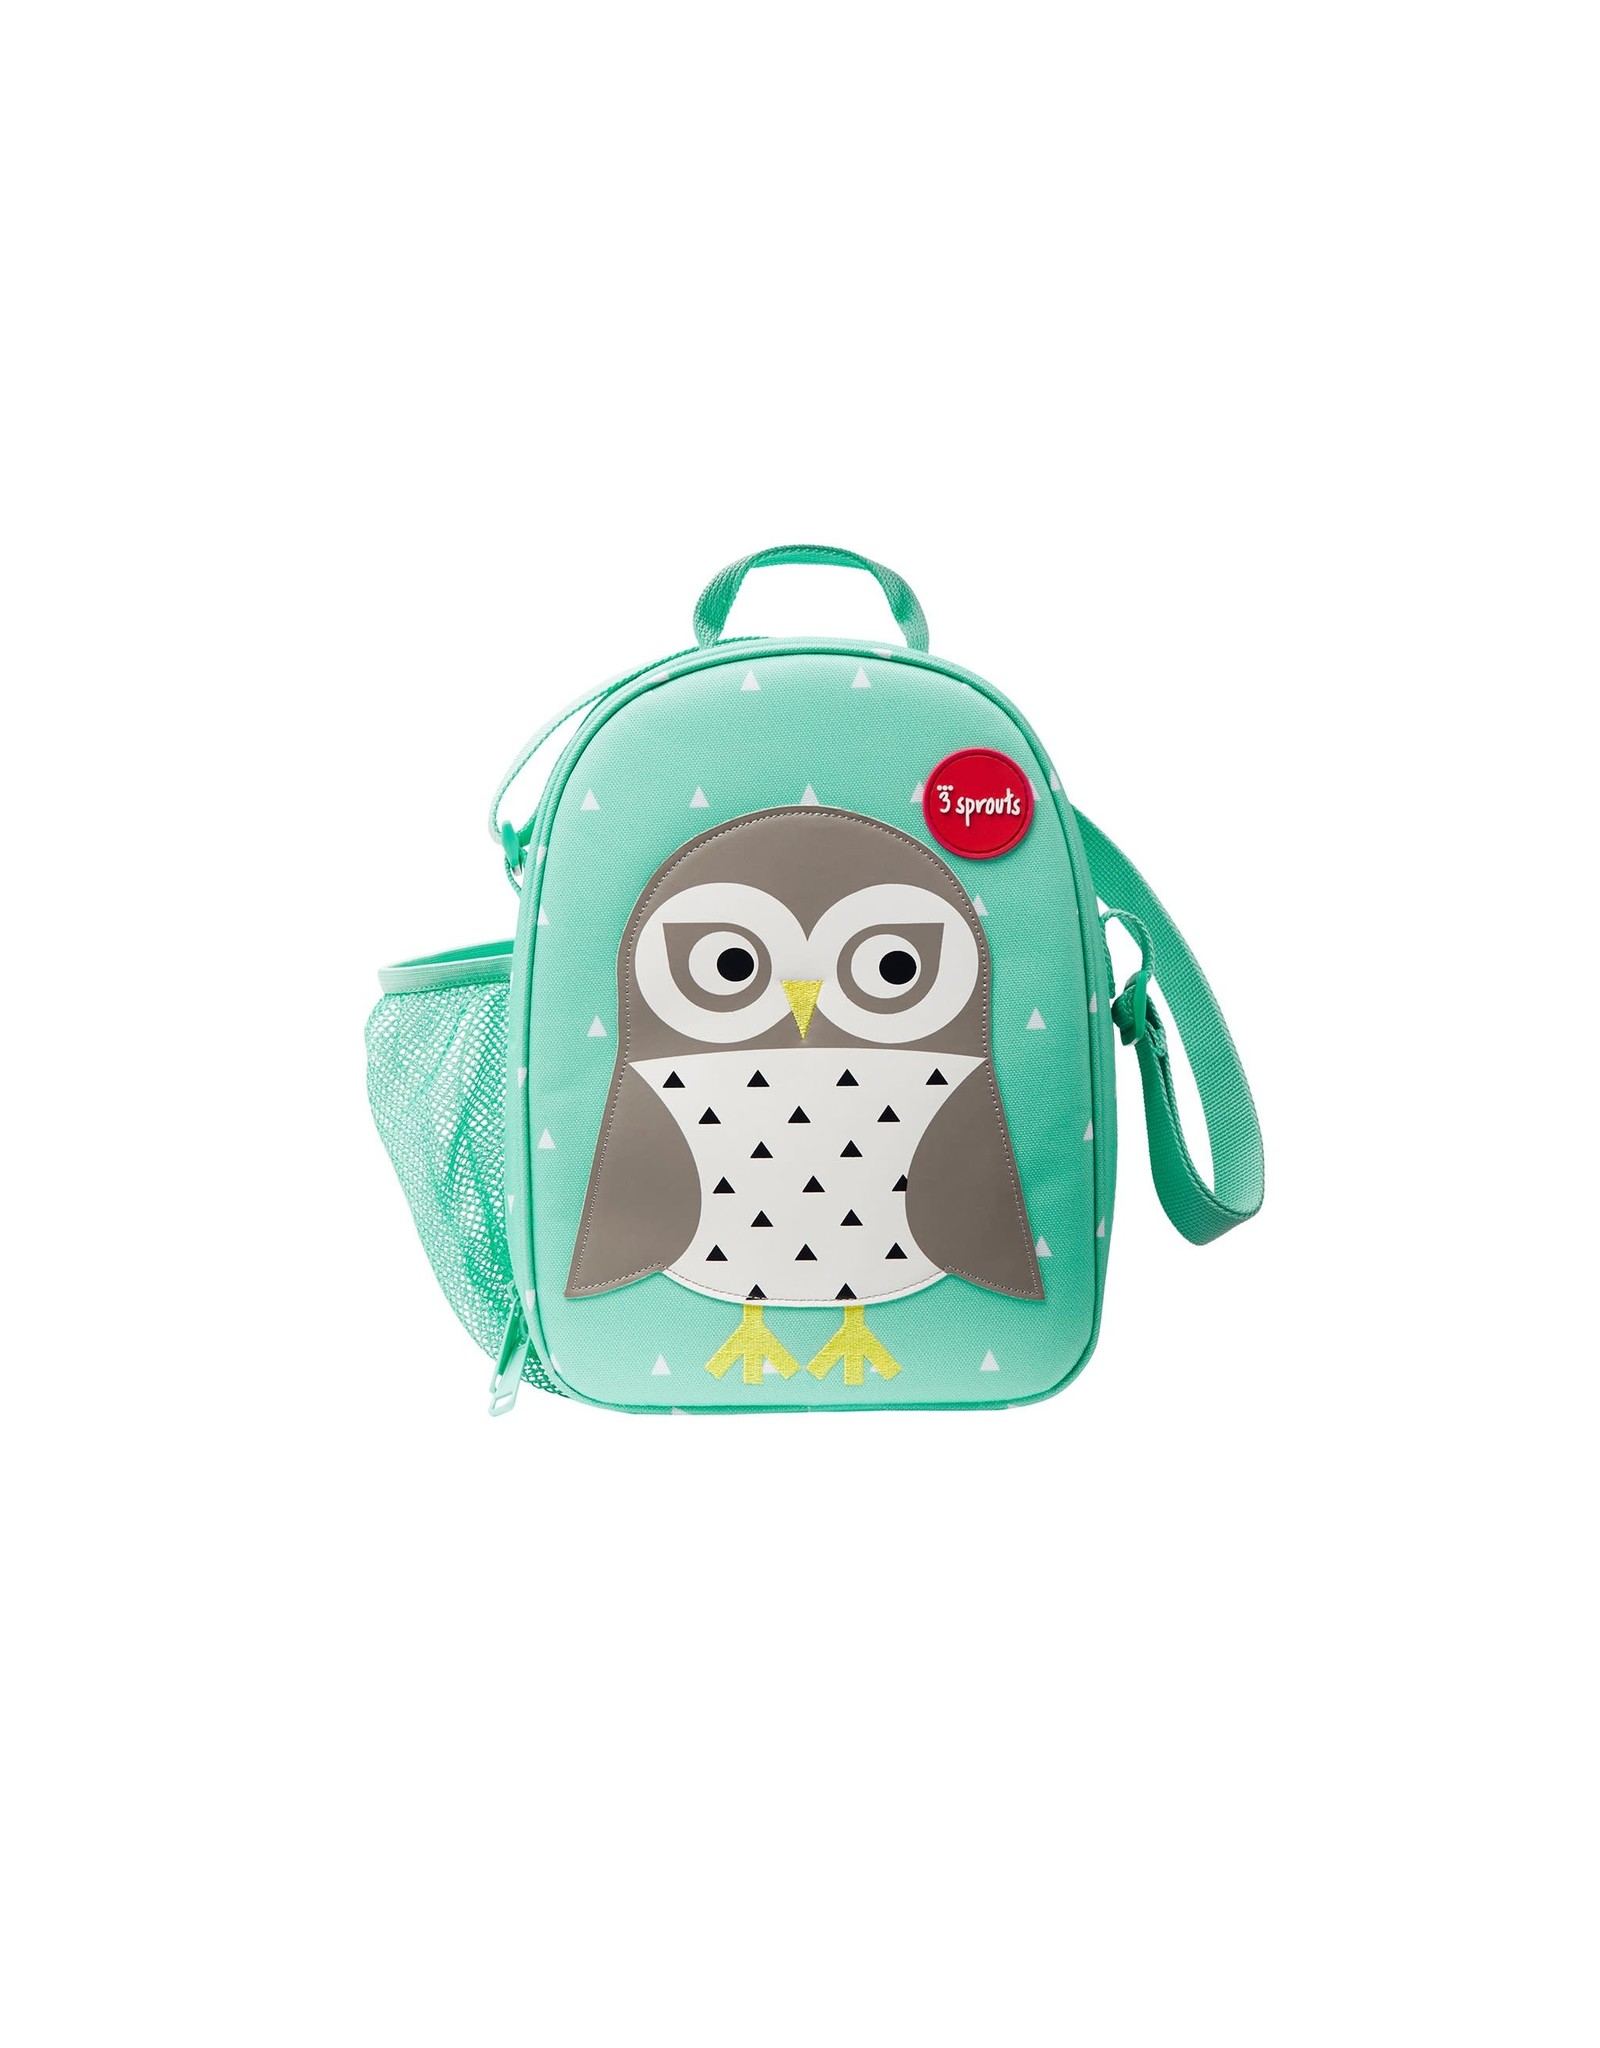 3 Sprouts Lunch Bag, Mint Owl